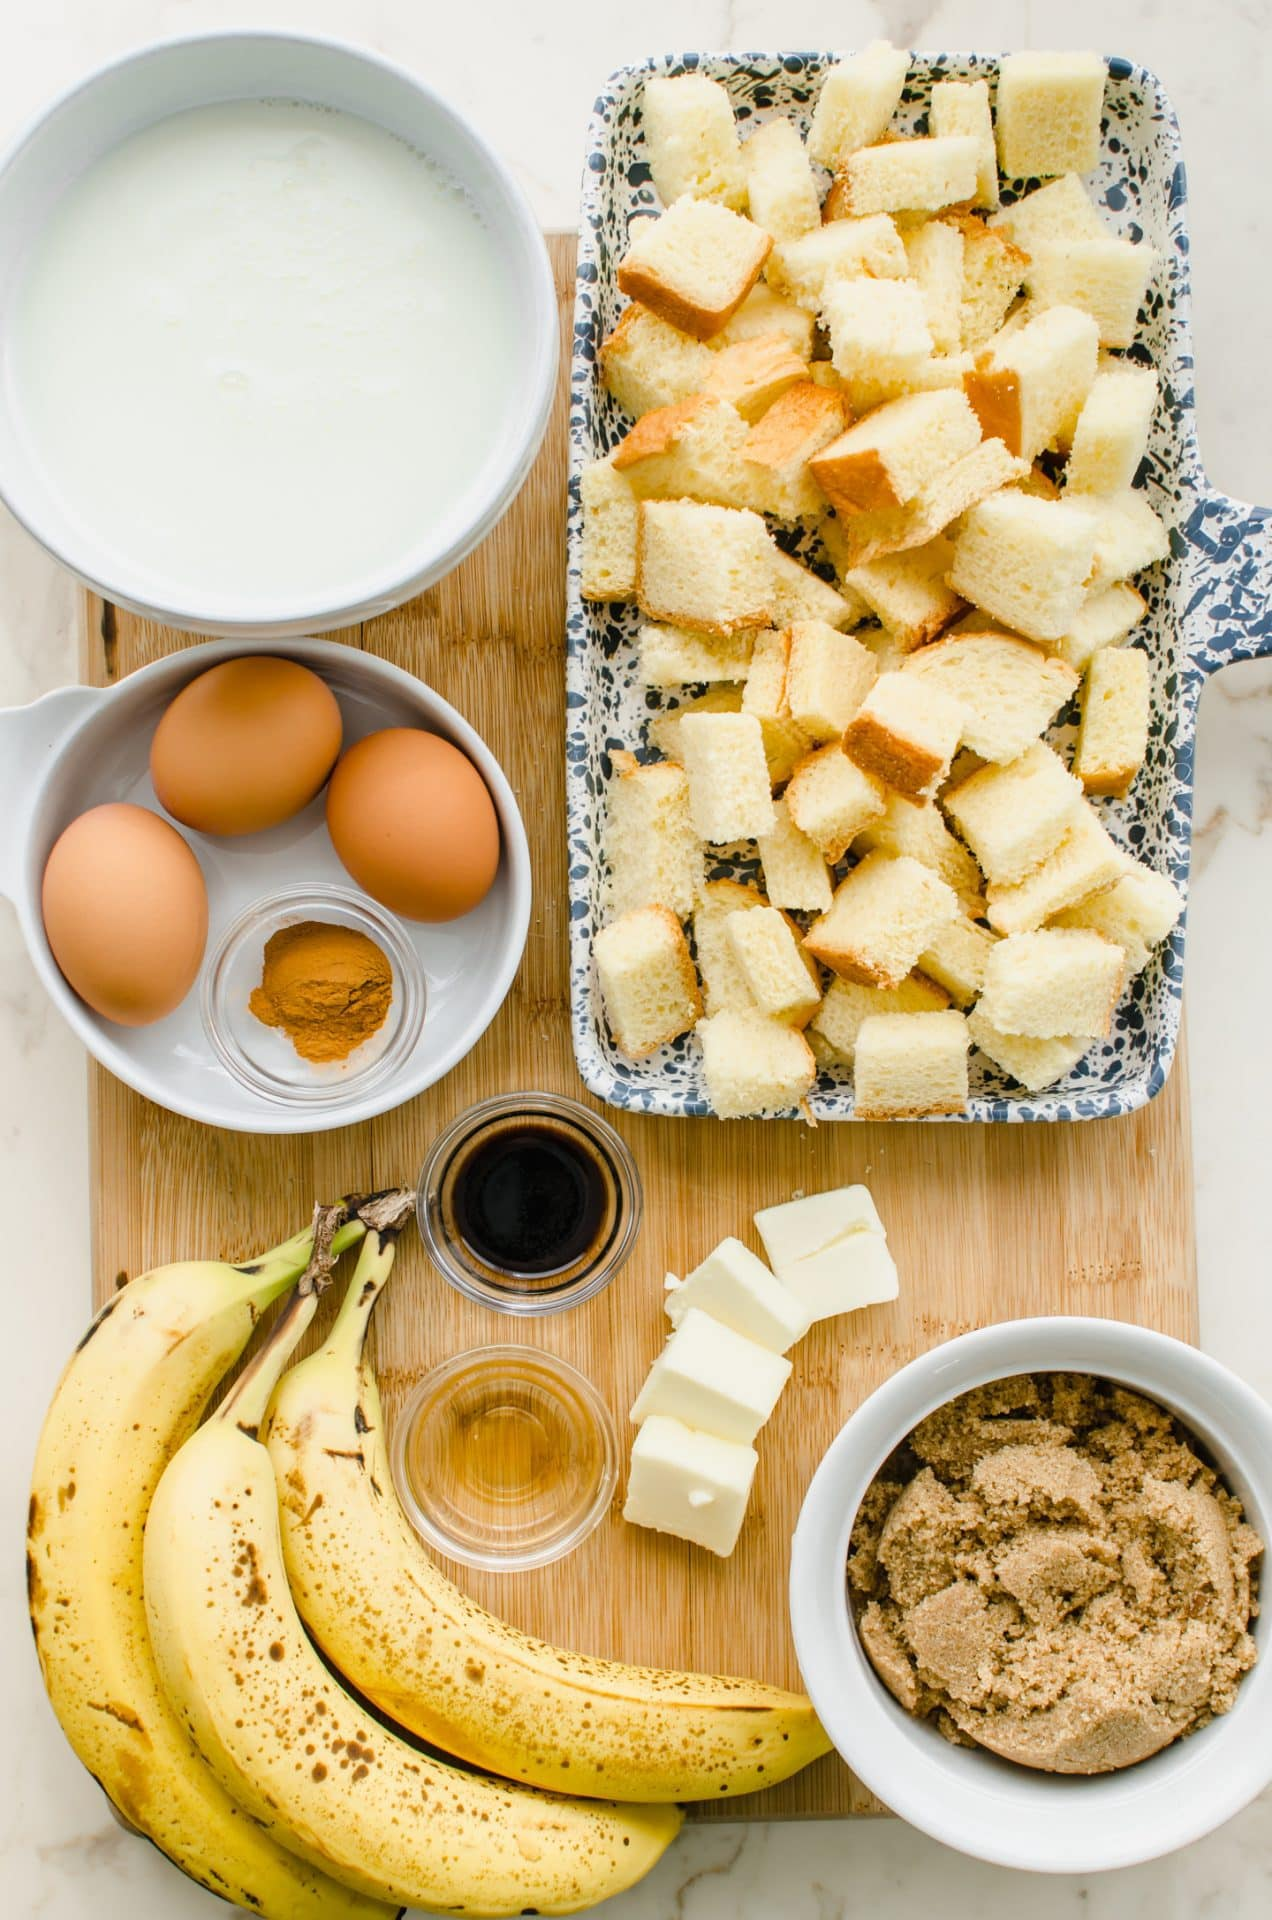 An overhead shot of ingredients in bowls on a wooden board for making bananas foster bread pudding.